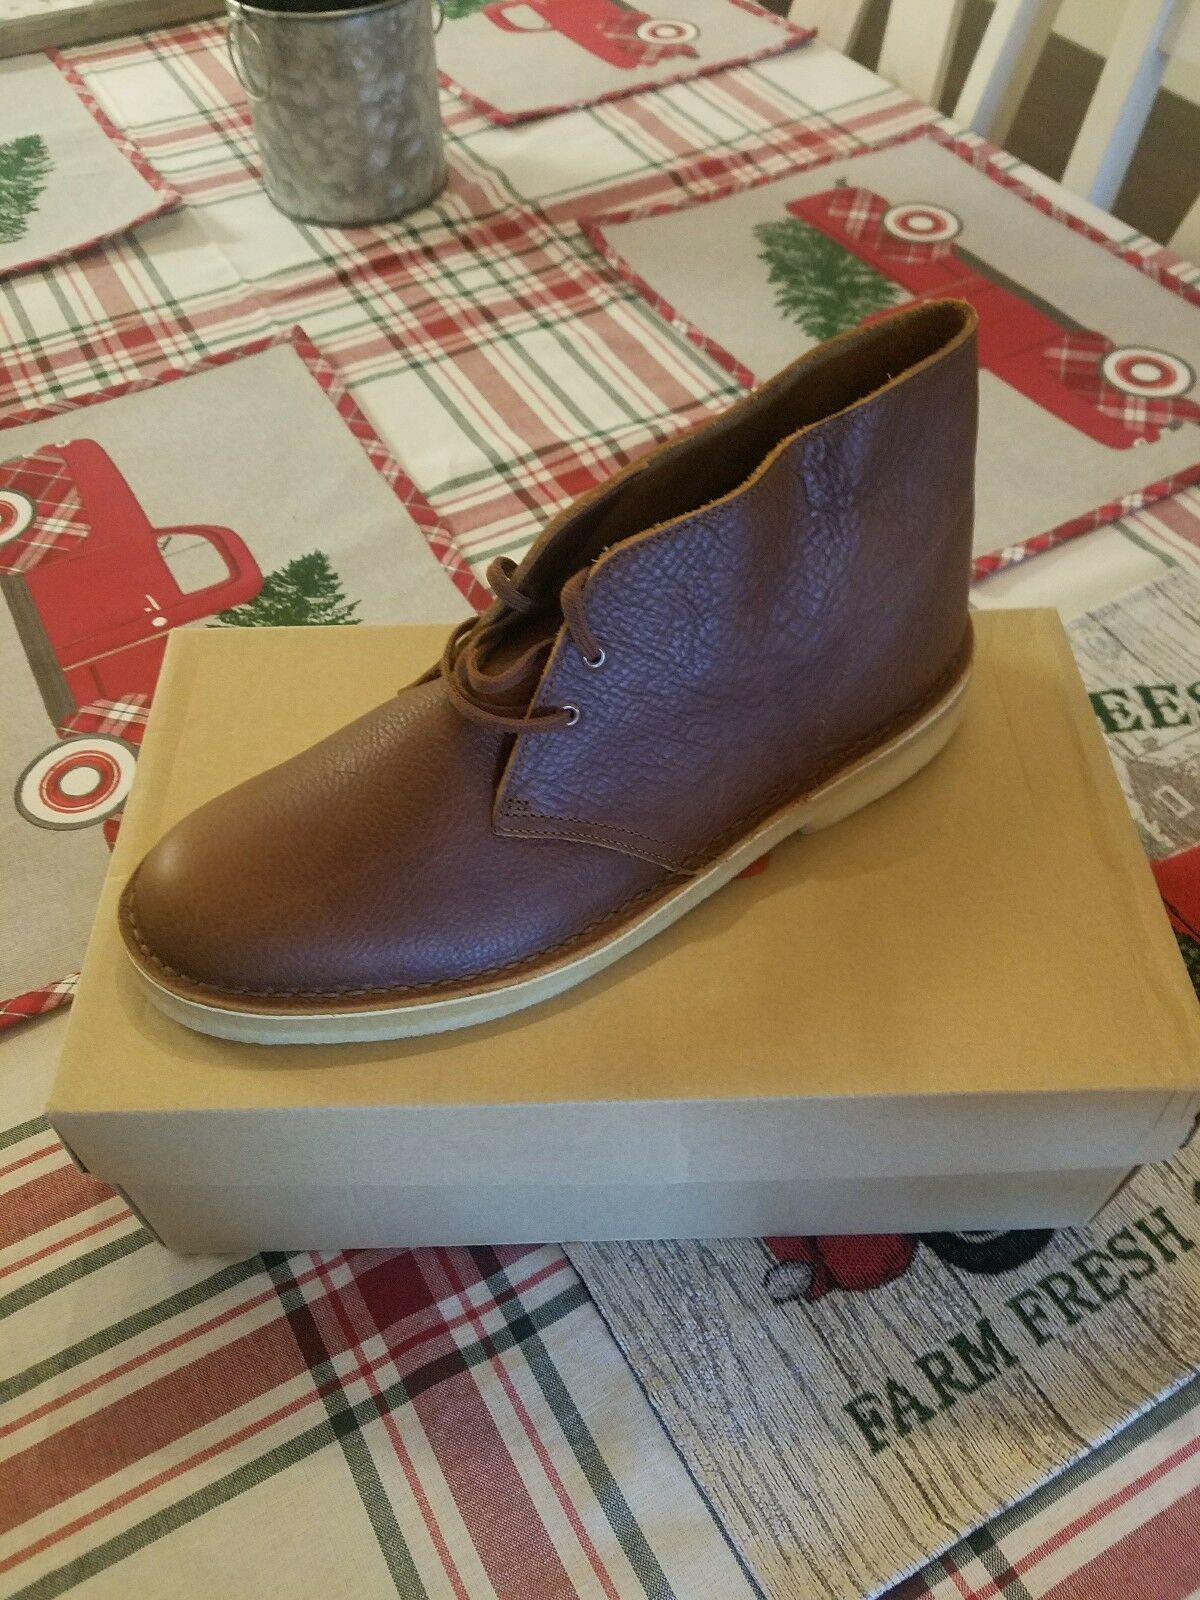 Men's Clarks Size 11.5 NEW Originals Desert Boots Tan Tumbled Leather 261 25549